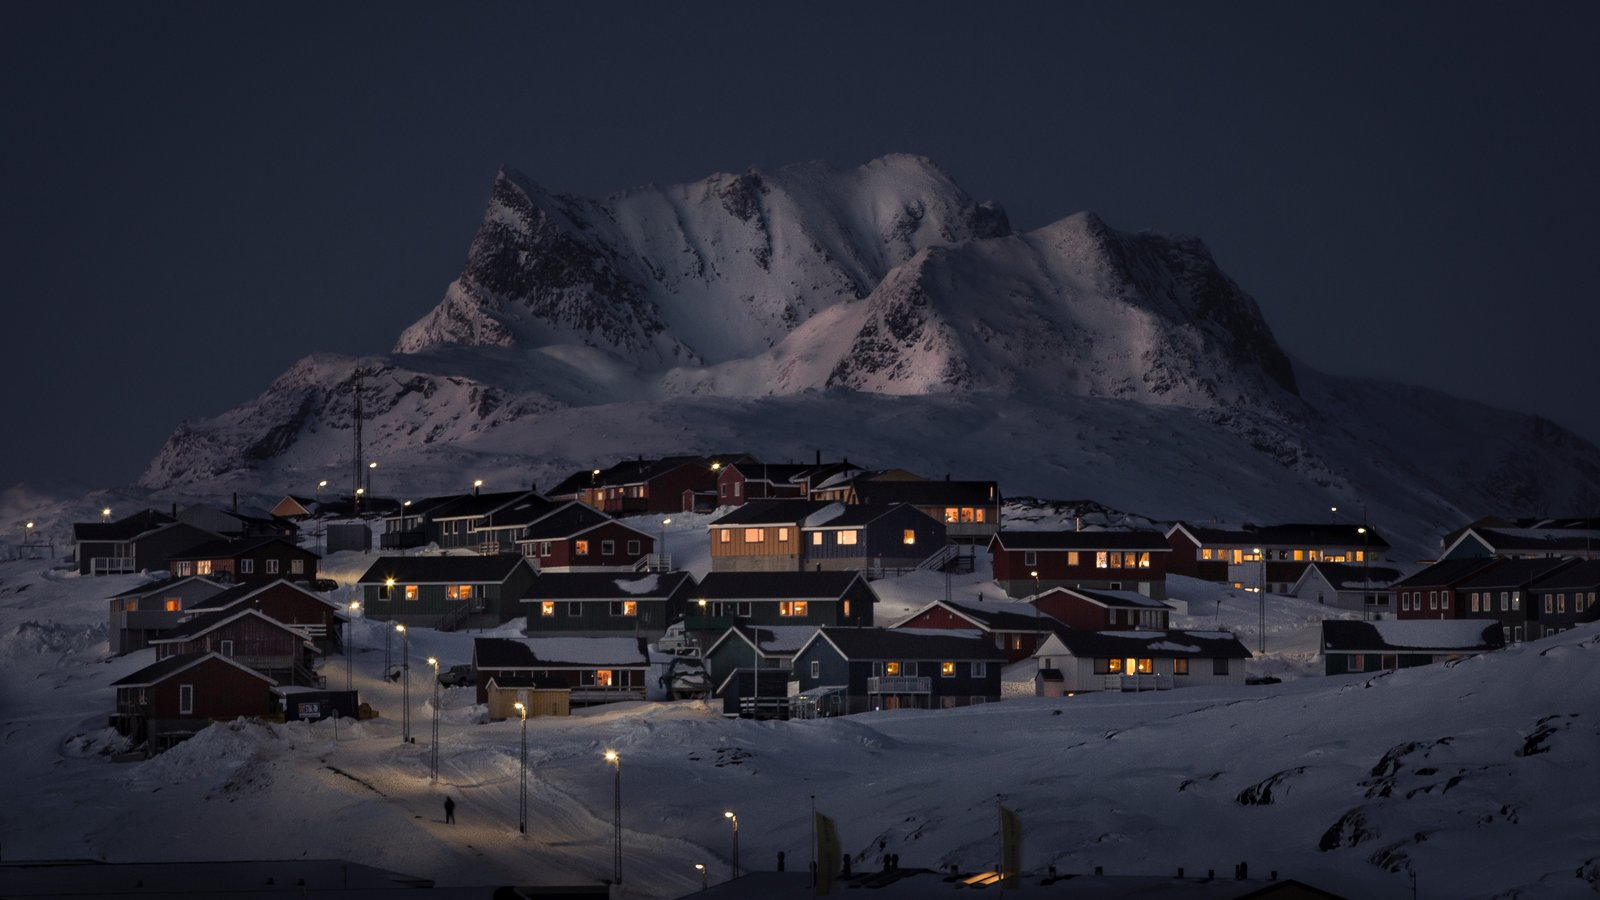 Nuuk city ligths is a beautiful sight from a hilltop